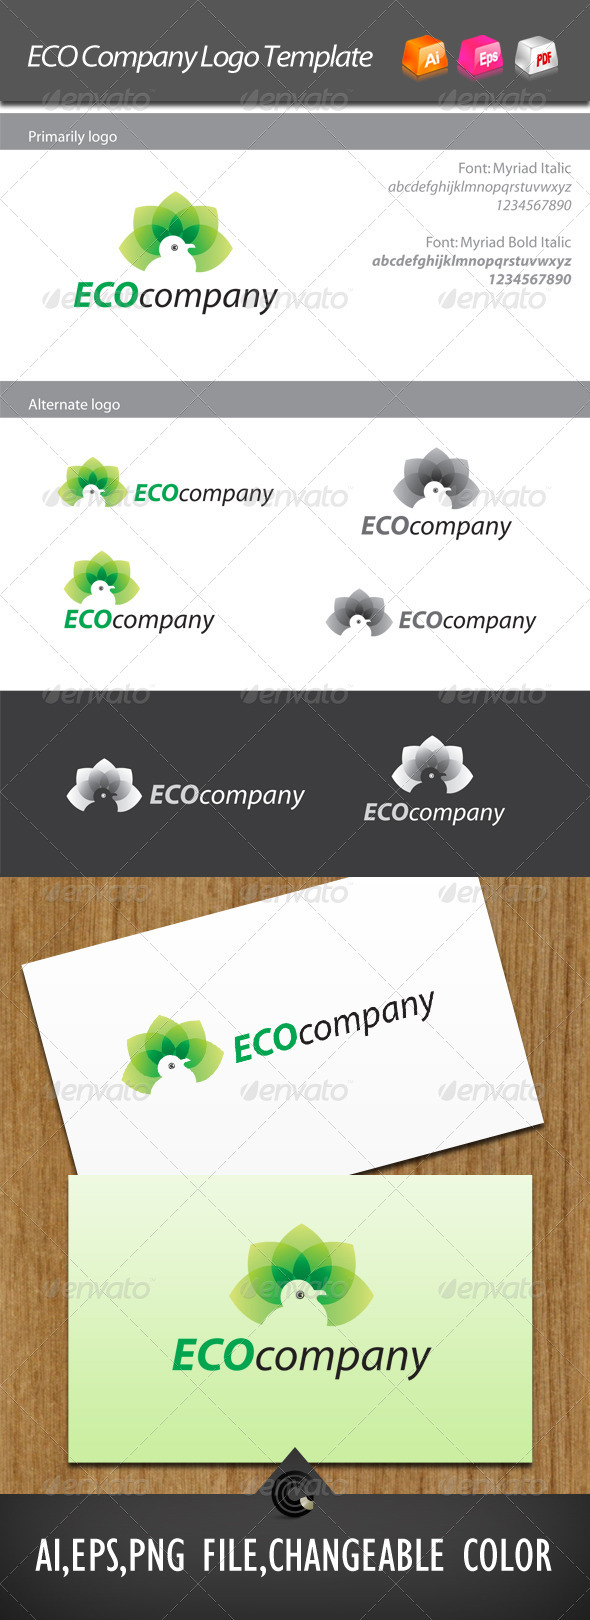 ECO Company Logo Template - Nature Logo Templates